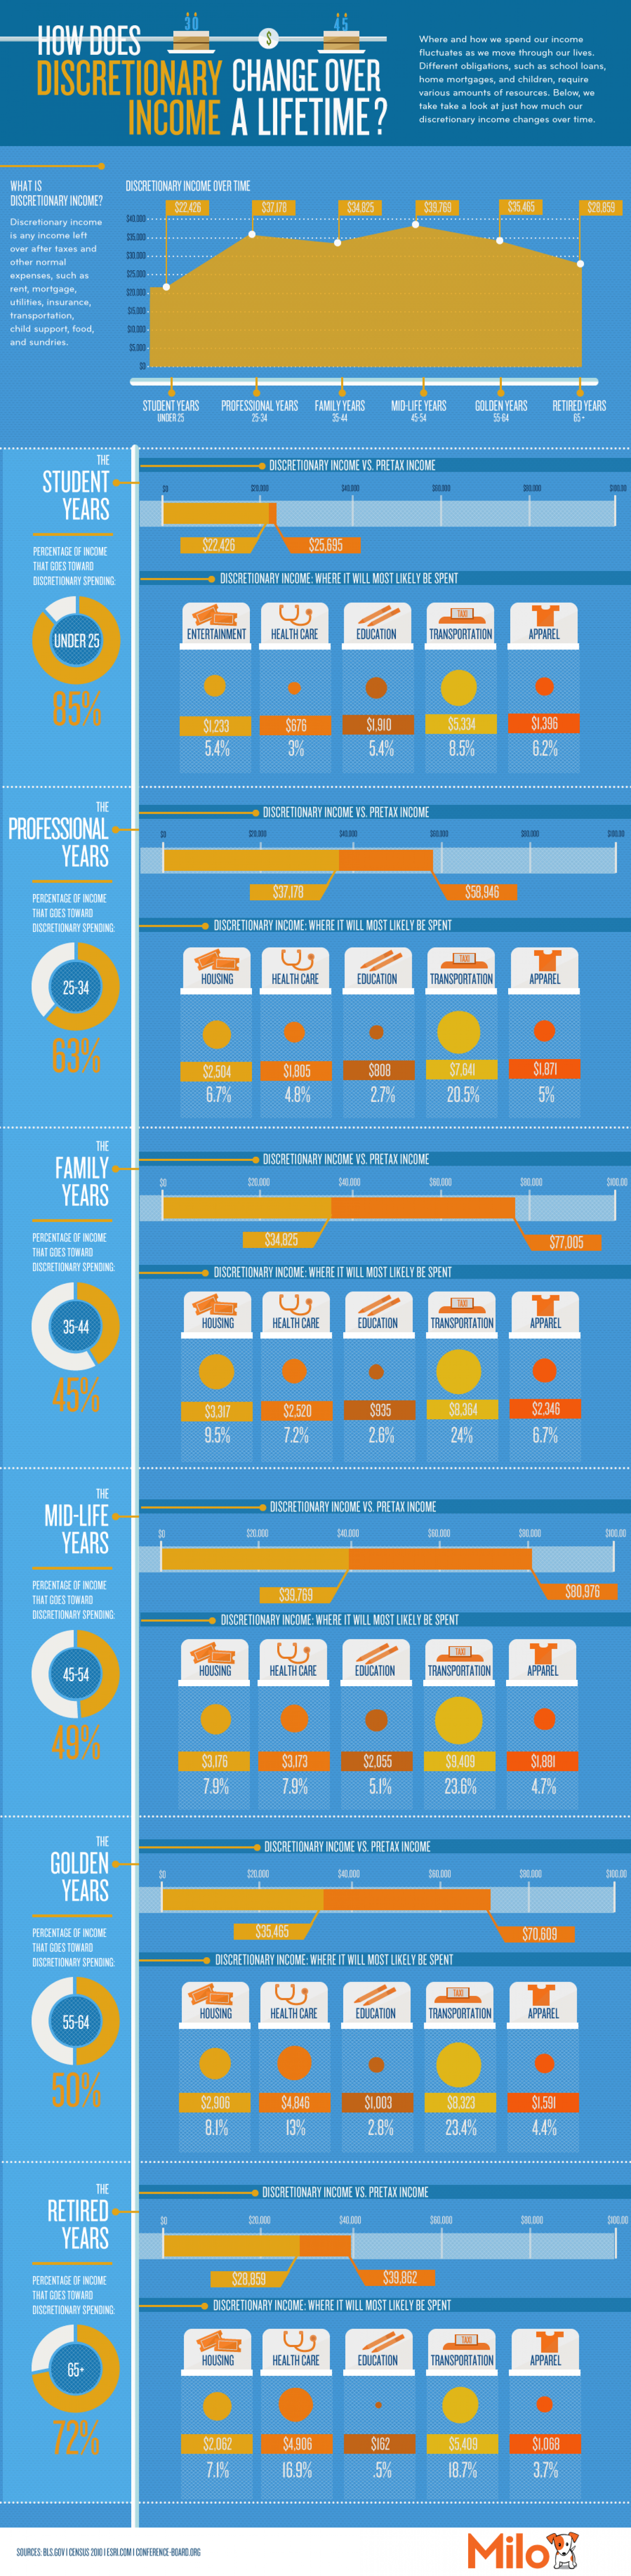 How Does Discretionary Income Change Over A Lifetime? Infographic